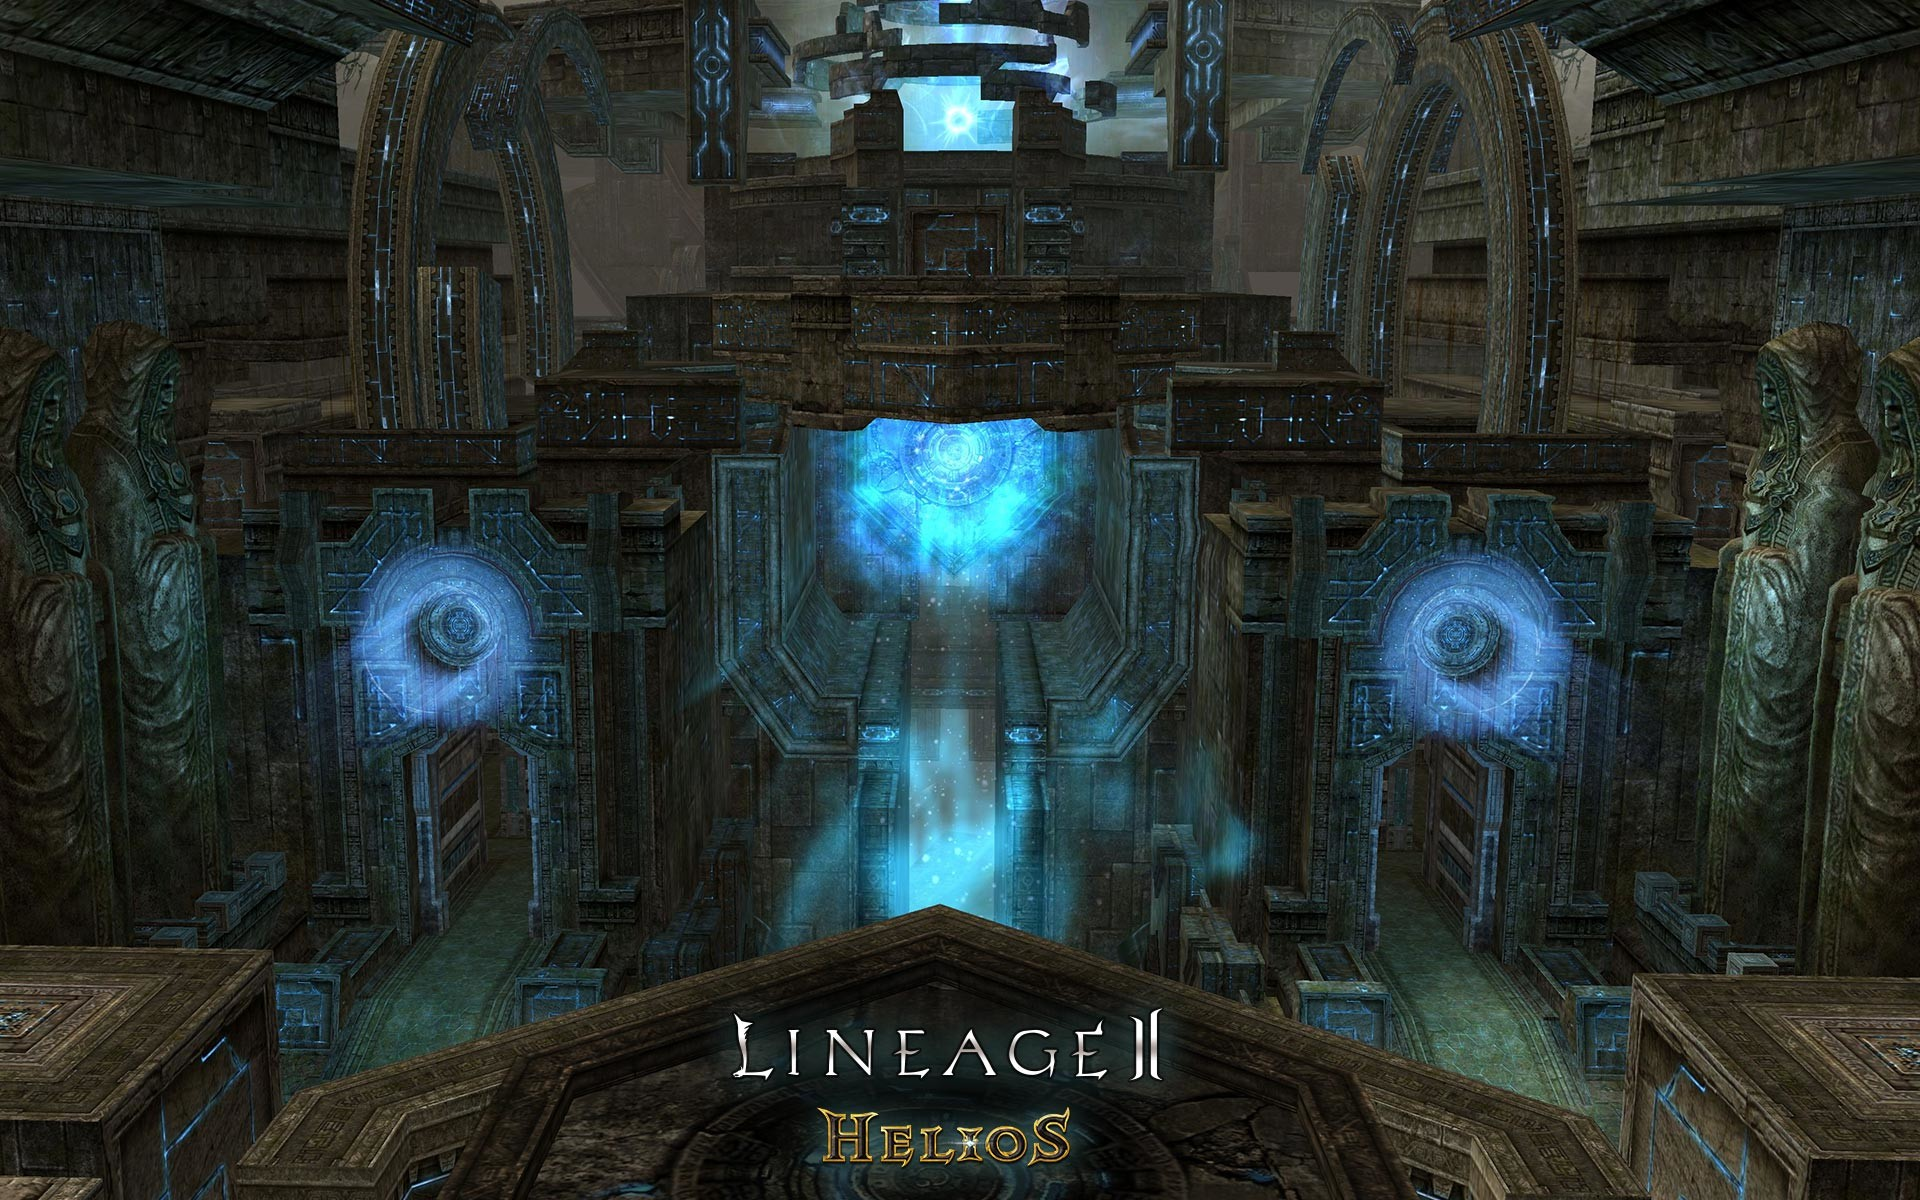 1920x1200 ... 38 Lineage II HD Wallpapers | Backgrounds - Wallpaper Abyss ...